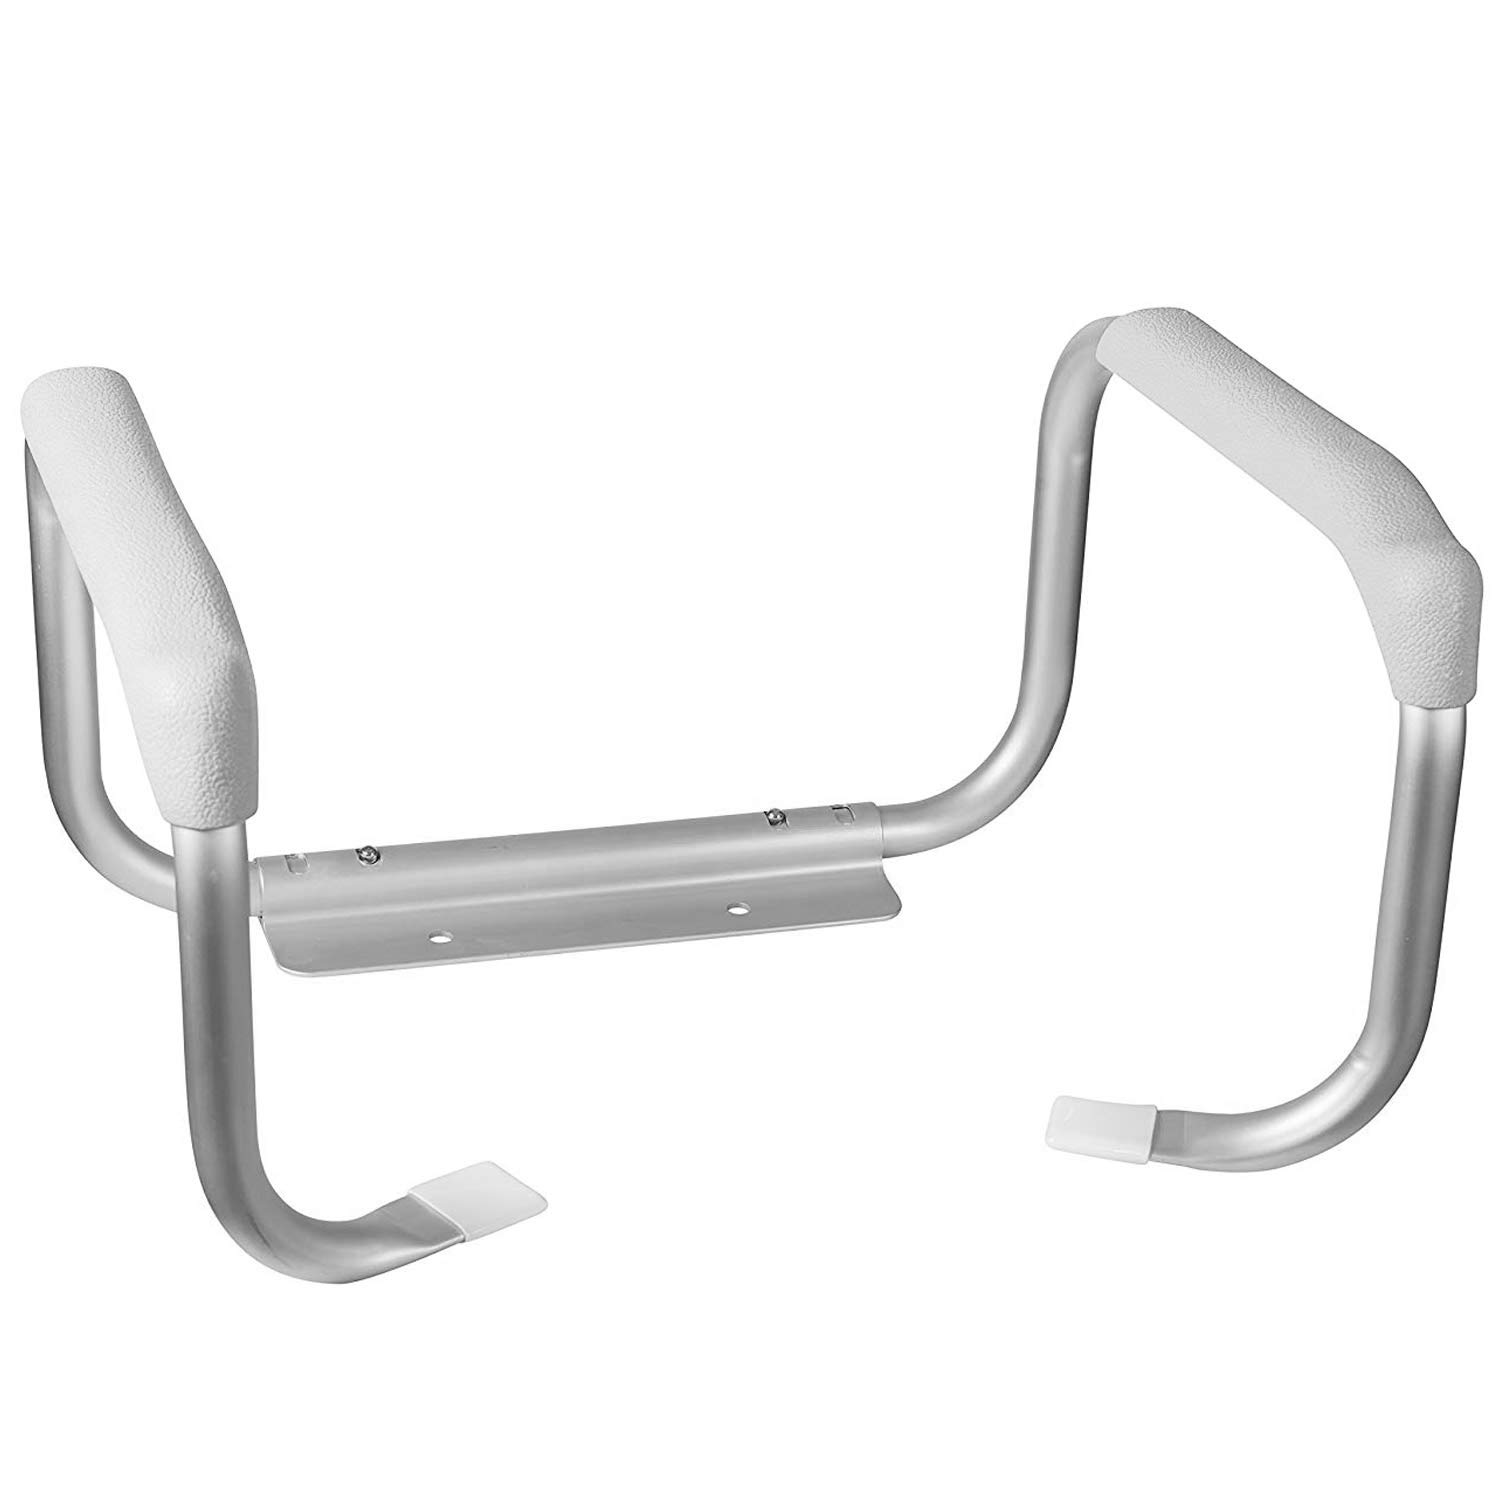 DMI Toilet Safety Rails, Toilet Grab Bars, Toilet Safety Handrails, Easy Assembly with no Tools, White by Duro-Med